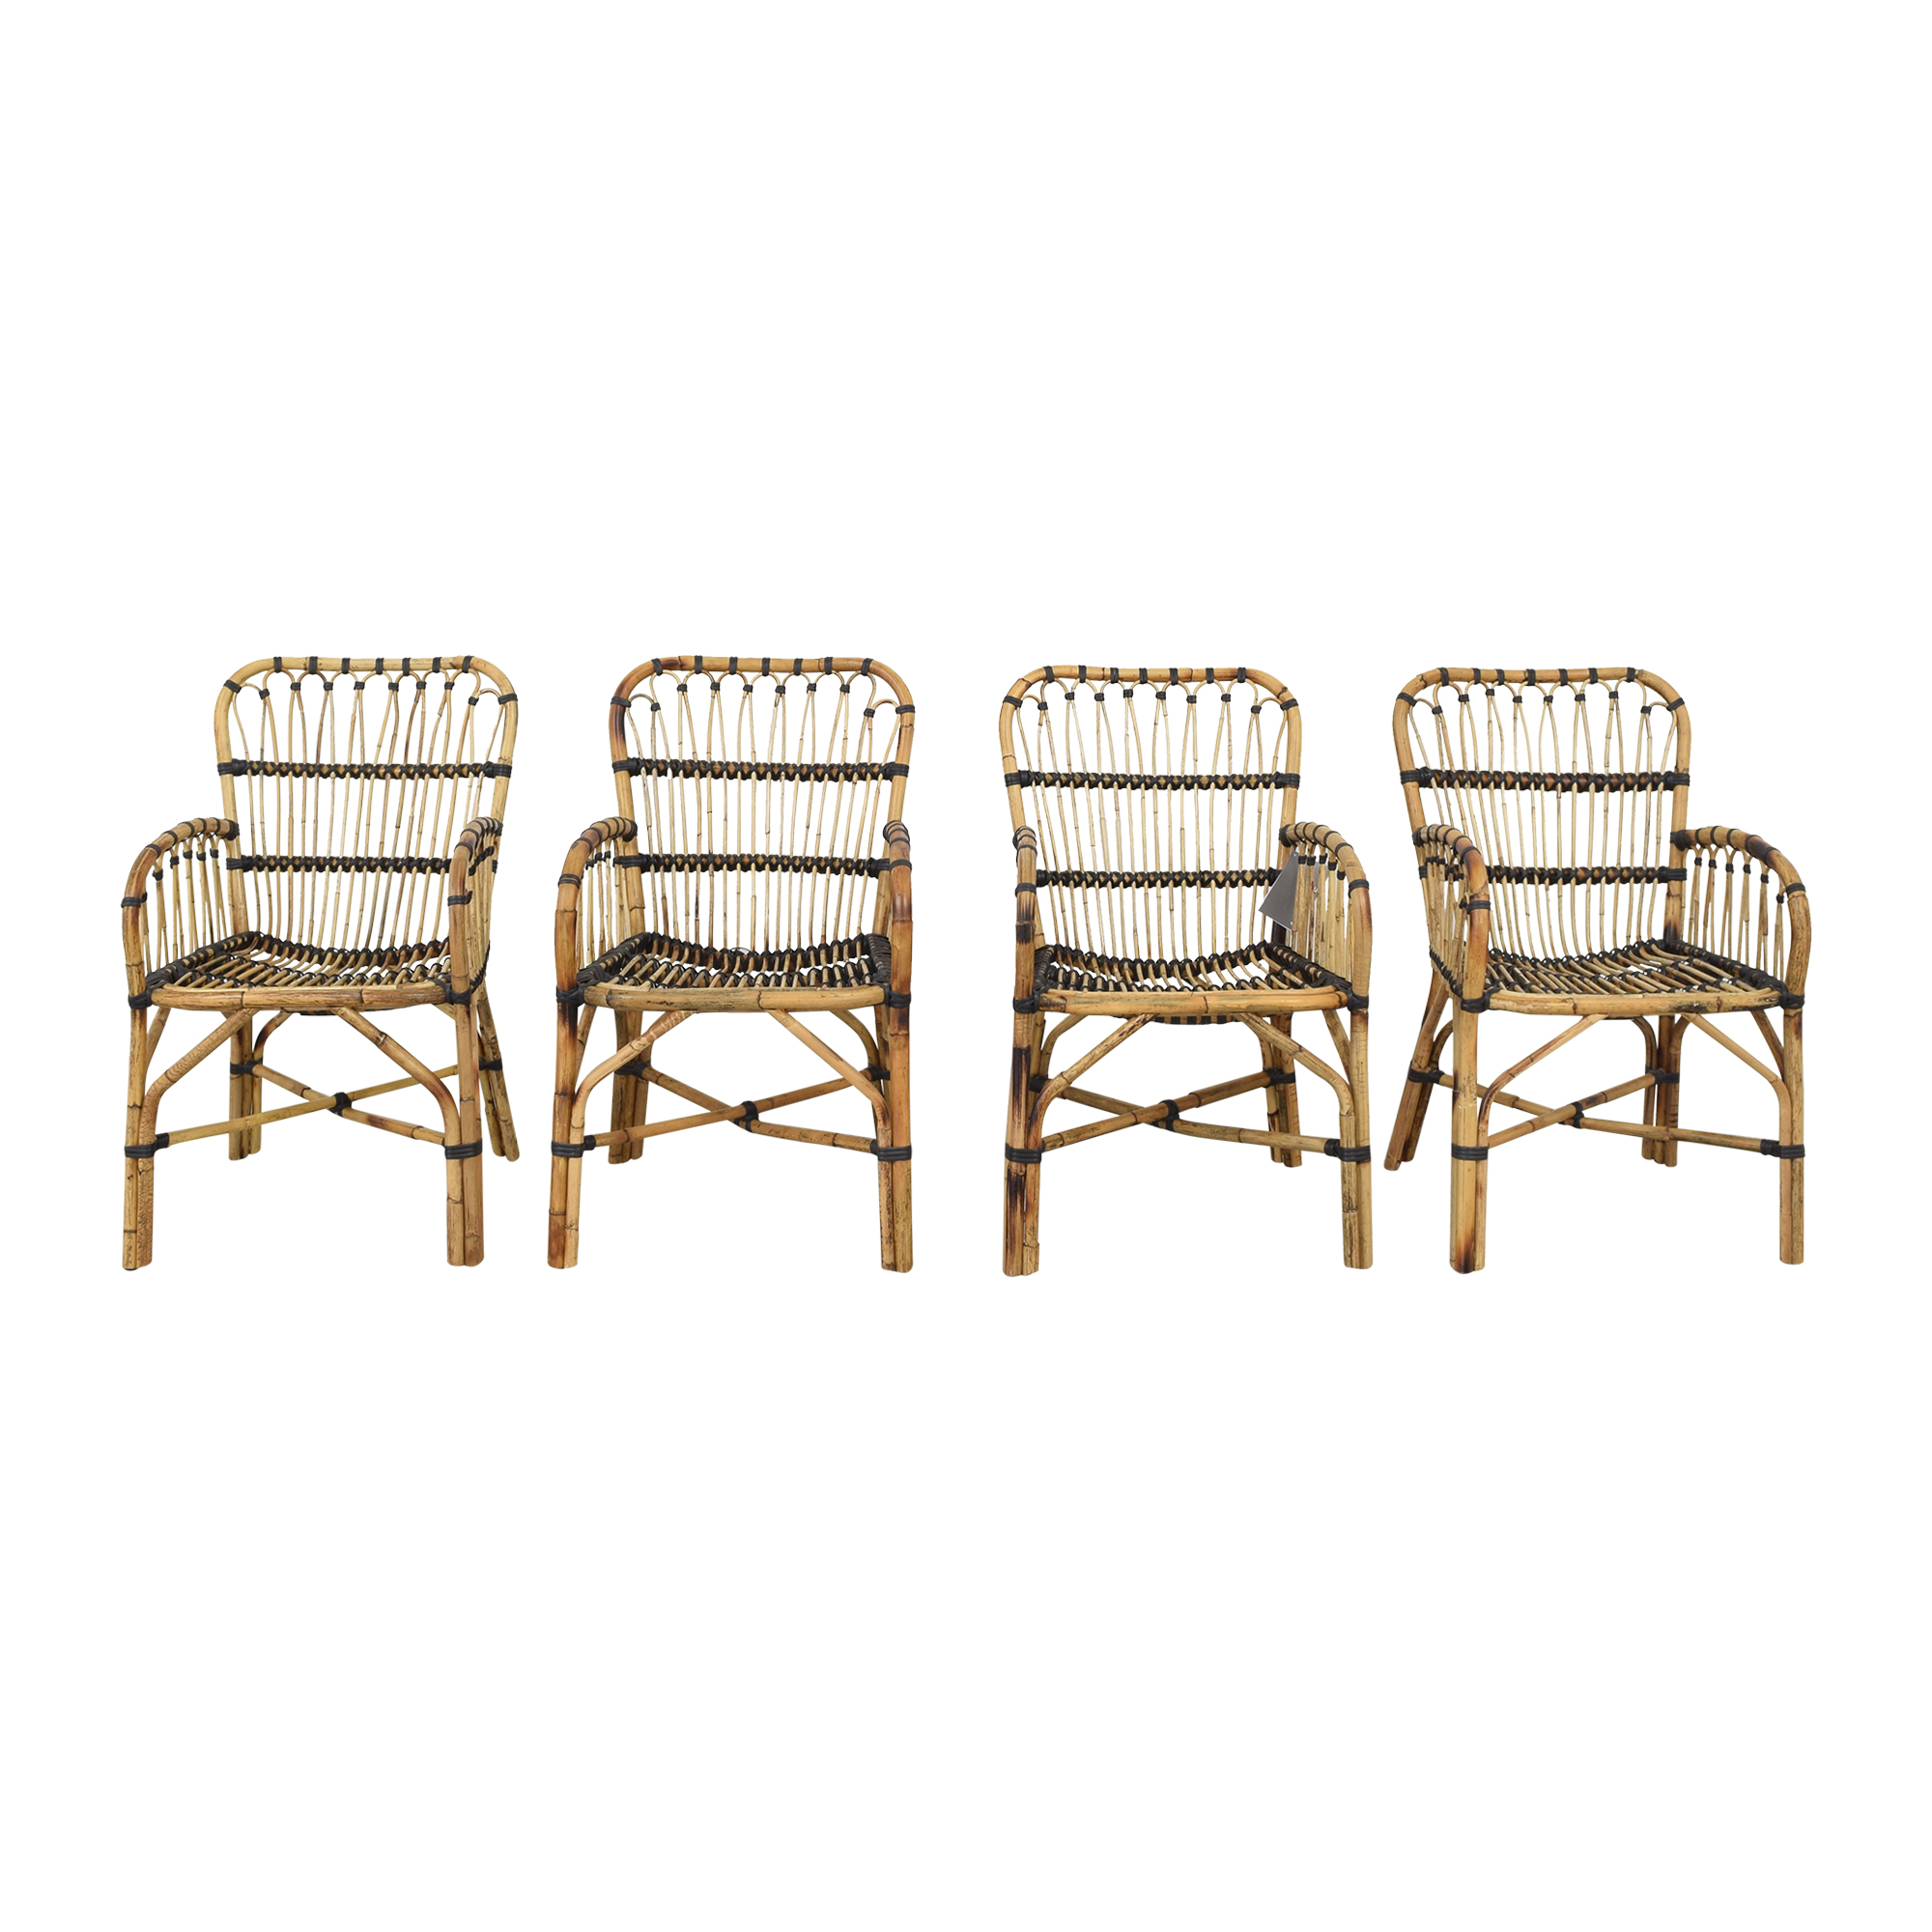 Article Article Malou Rattan Dining Chairs price